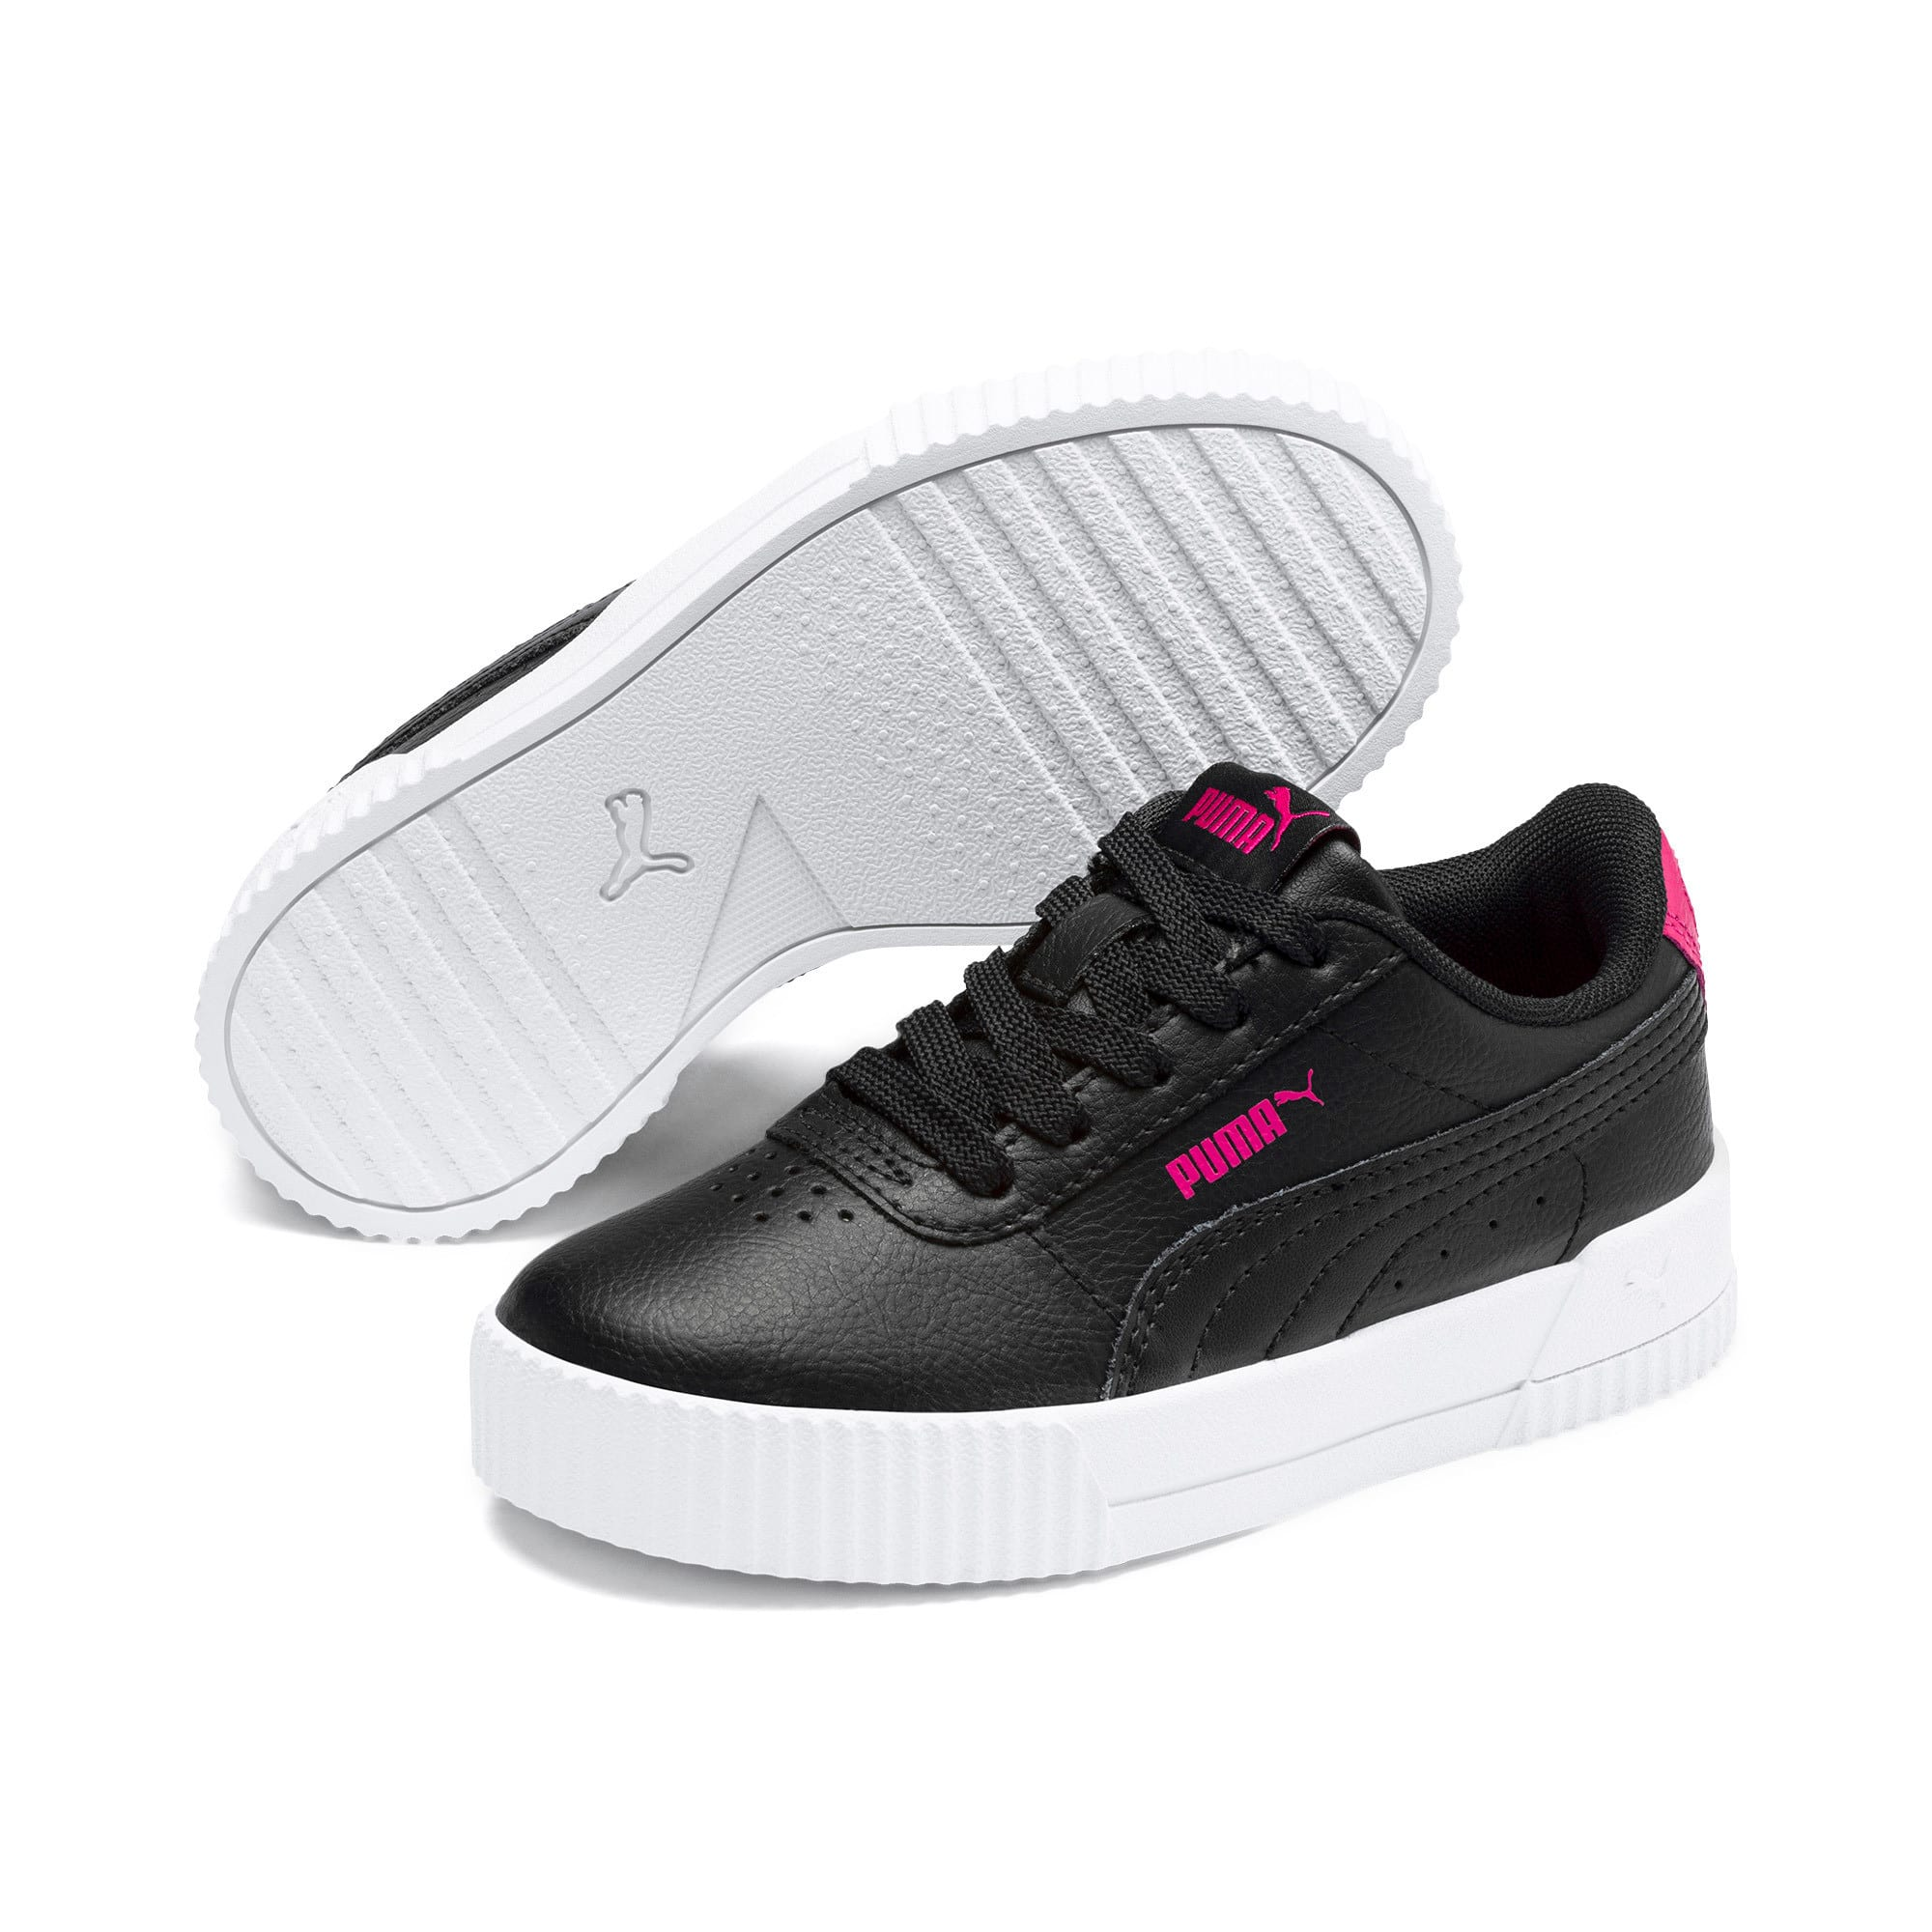 Thumbnail 2 of Carina L Kids' Trainers, Puma Black-Puma Black, medium